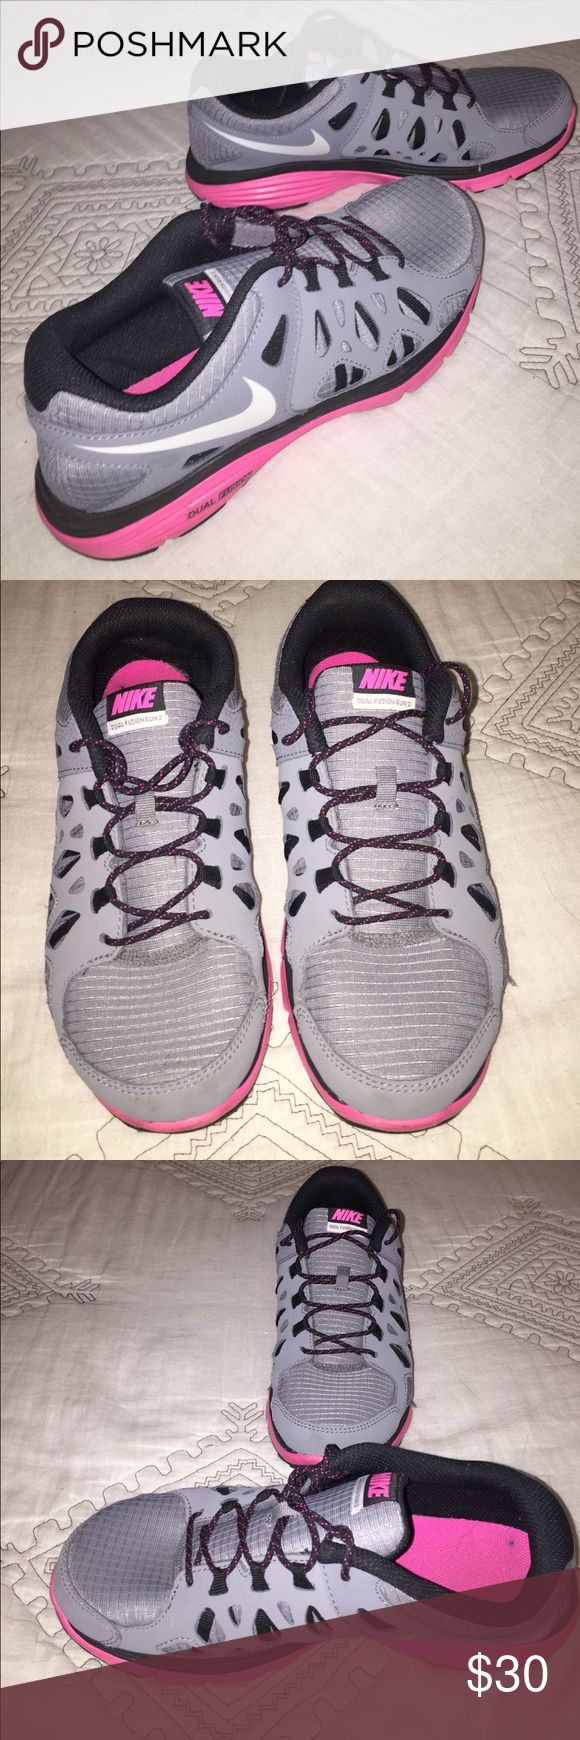 Nike Dual Fusion Run 2 Gray & Pink Nike Dual Fusion Run 2 shoes. Fits a size 8 for women. UK 6. EUR 39. 24.5 cm. The shoes look brand new, only worn about 3 times. The soles of the shoes are very clean. Nike Shoes Athletic Shoes